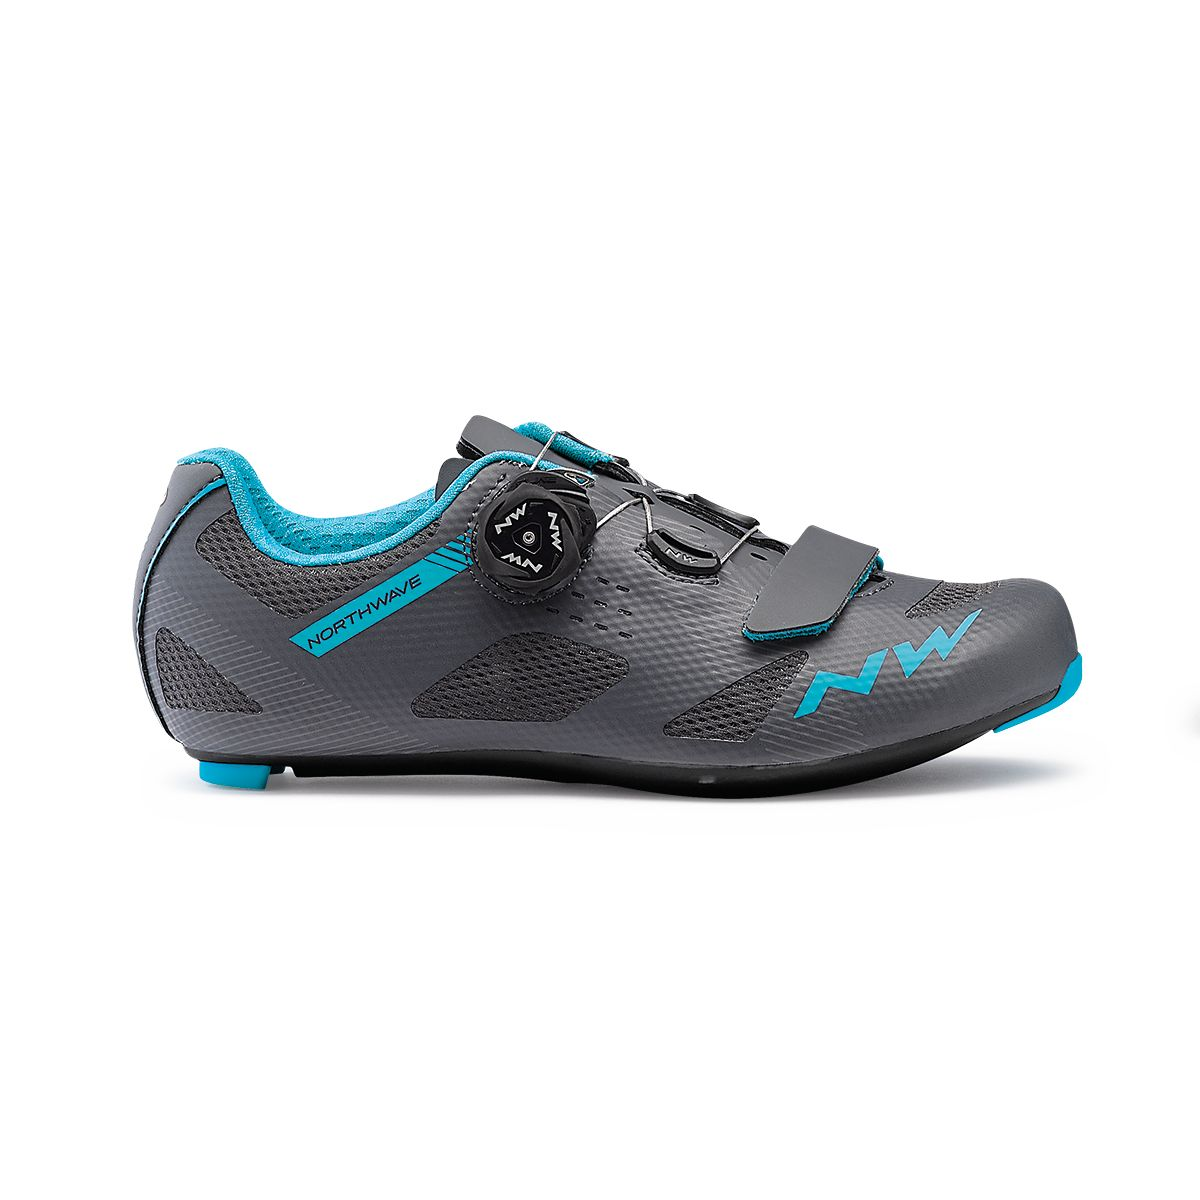 STORM WMN women's road shoes